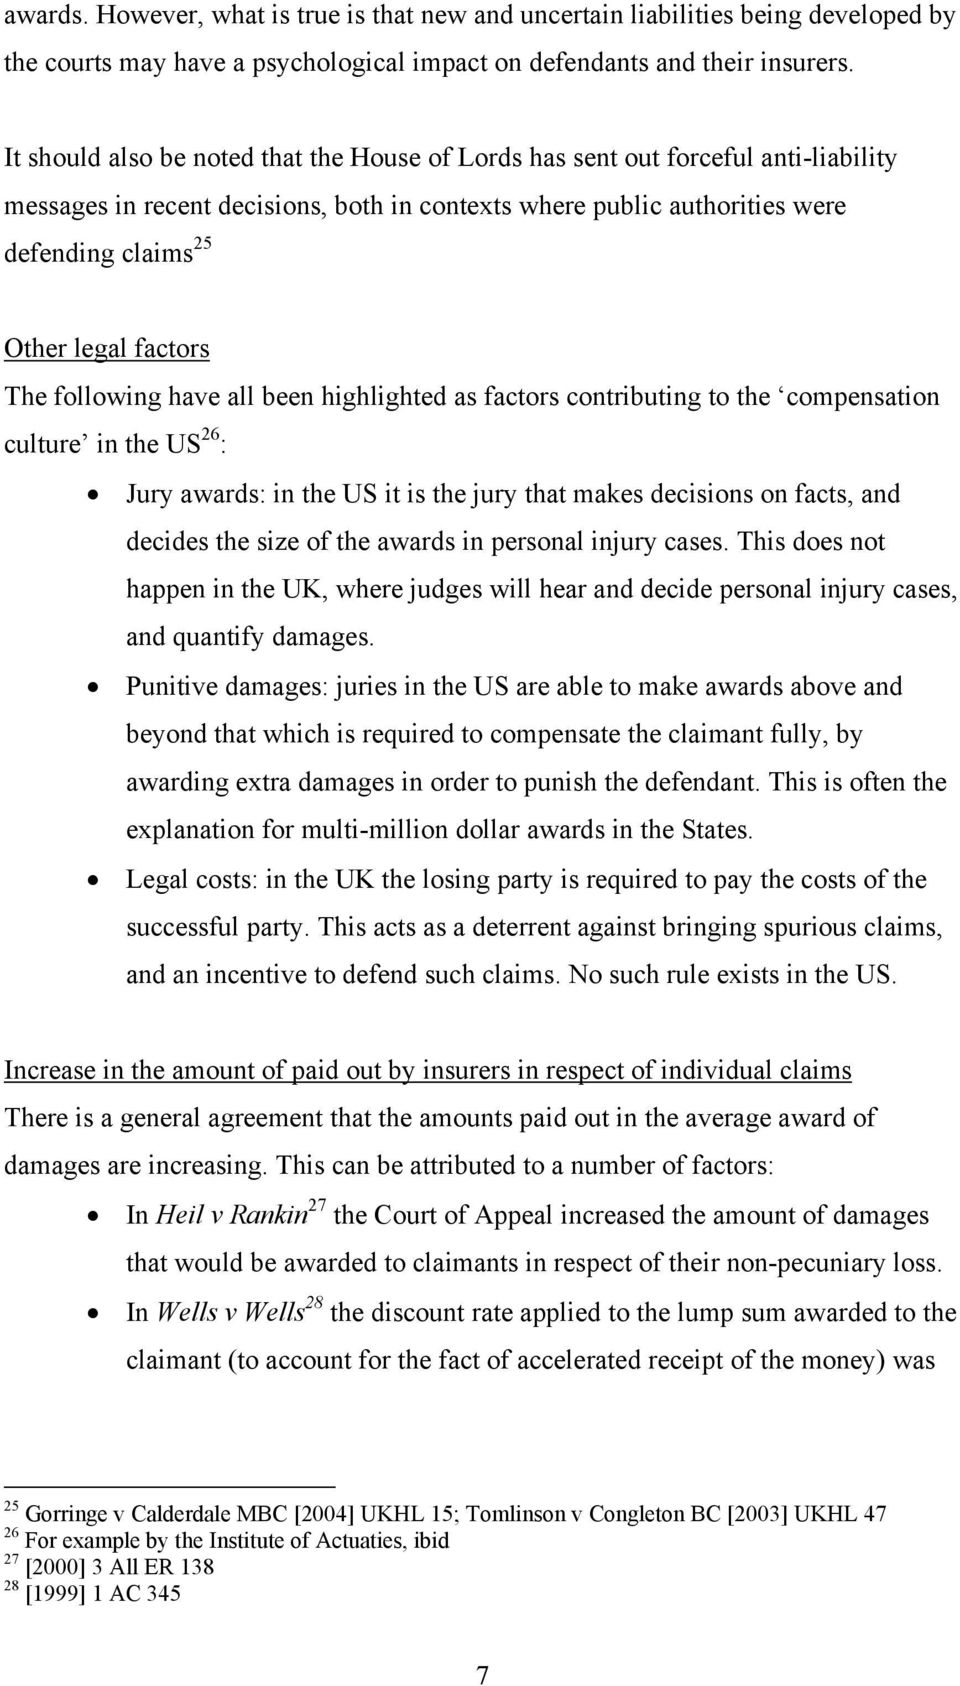 factors The following have all been highlighted as factors contributing to the compensation culture in the US 26 : Jury awards: in the US it is the jury that makes decisions on facts, and decides the